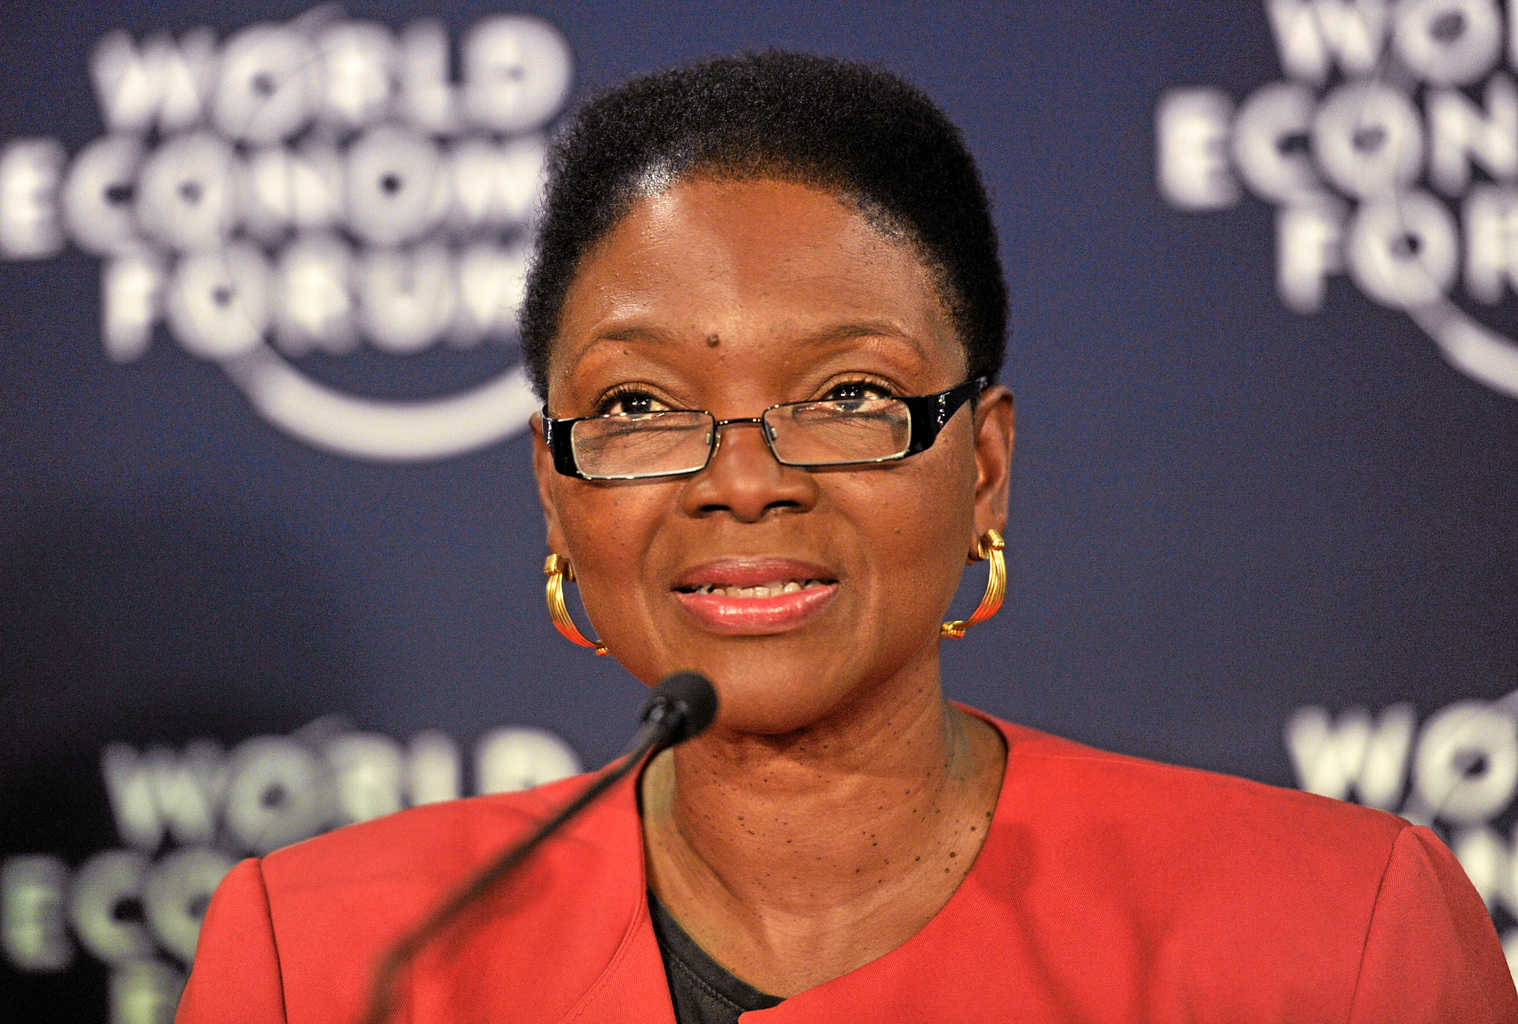 Baroness Valerie Amos, Undersecretary-General for Humanitarian Affairs and Emergency Relief Coordinator, United Nations, New York Photo Credit: Flickr